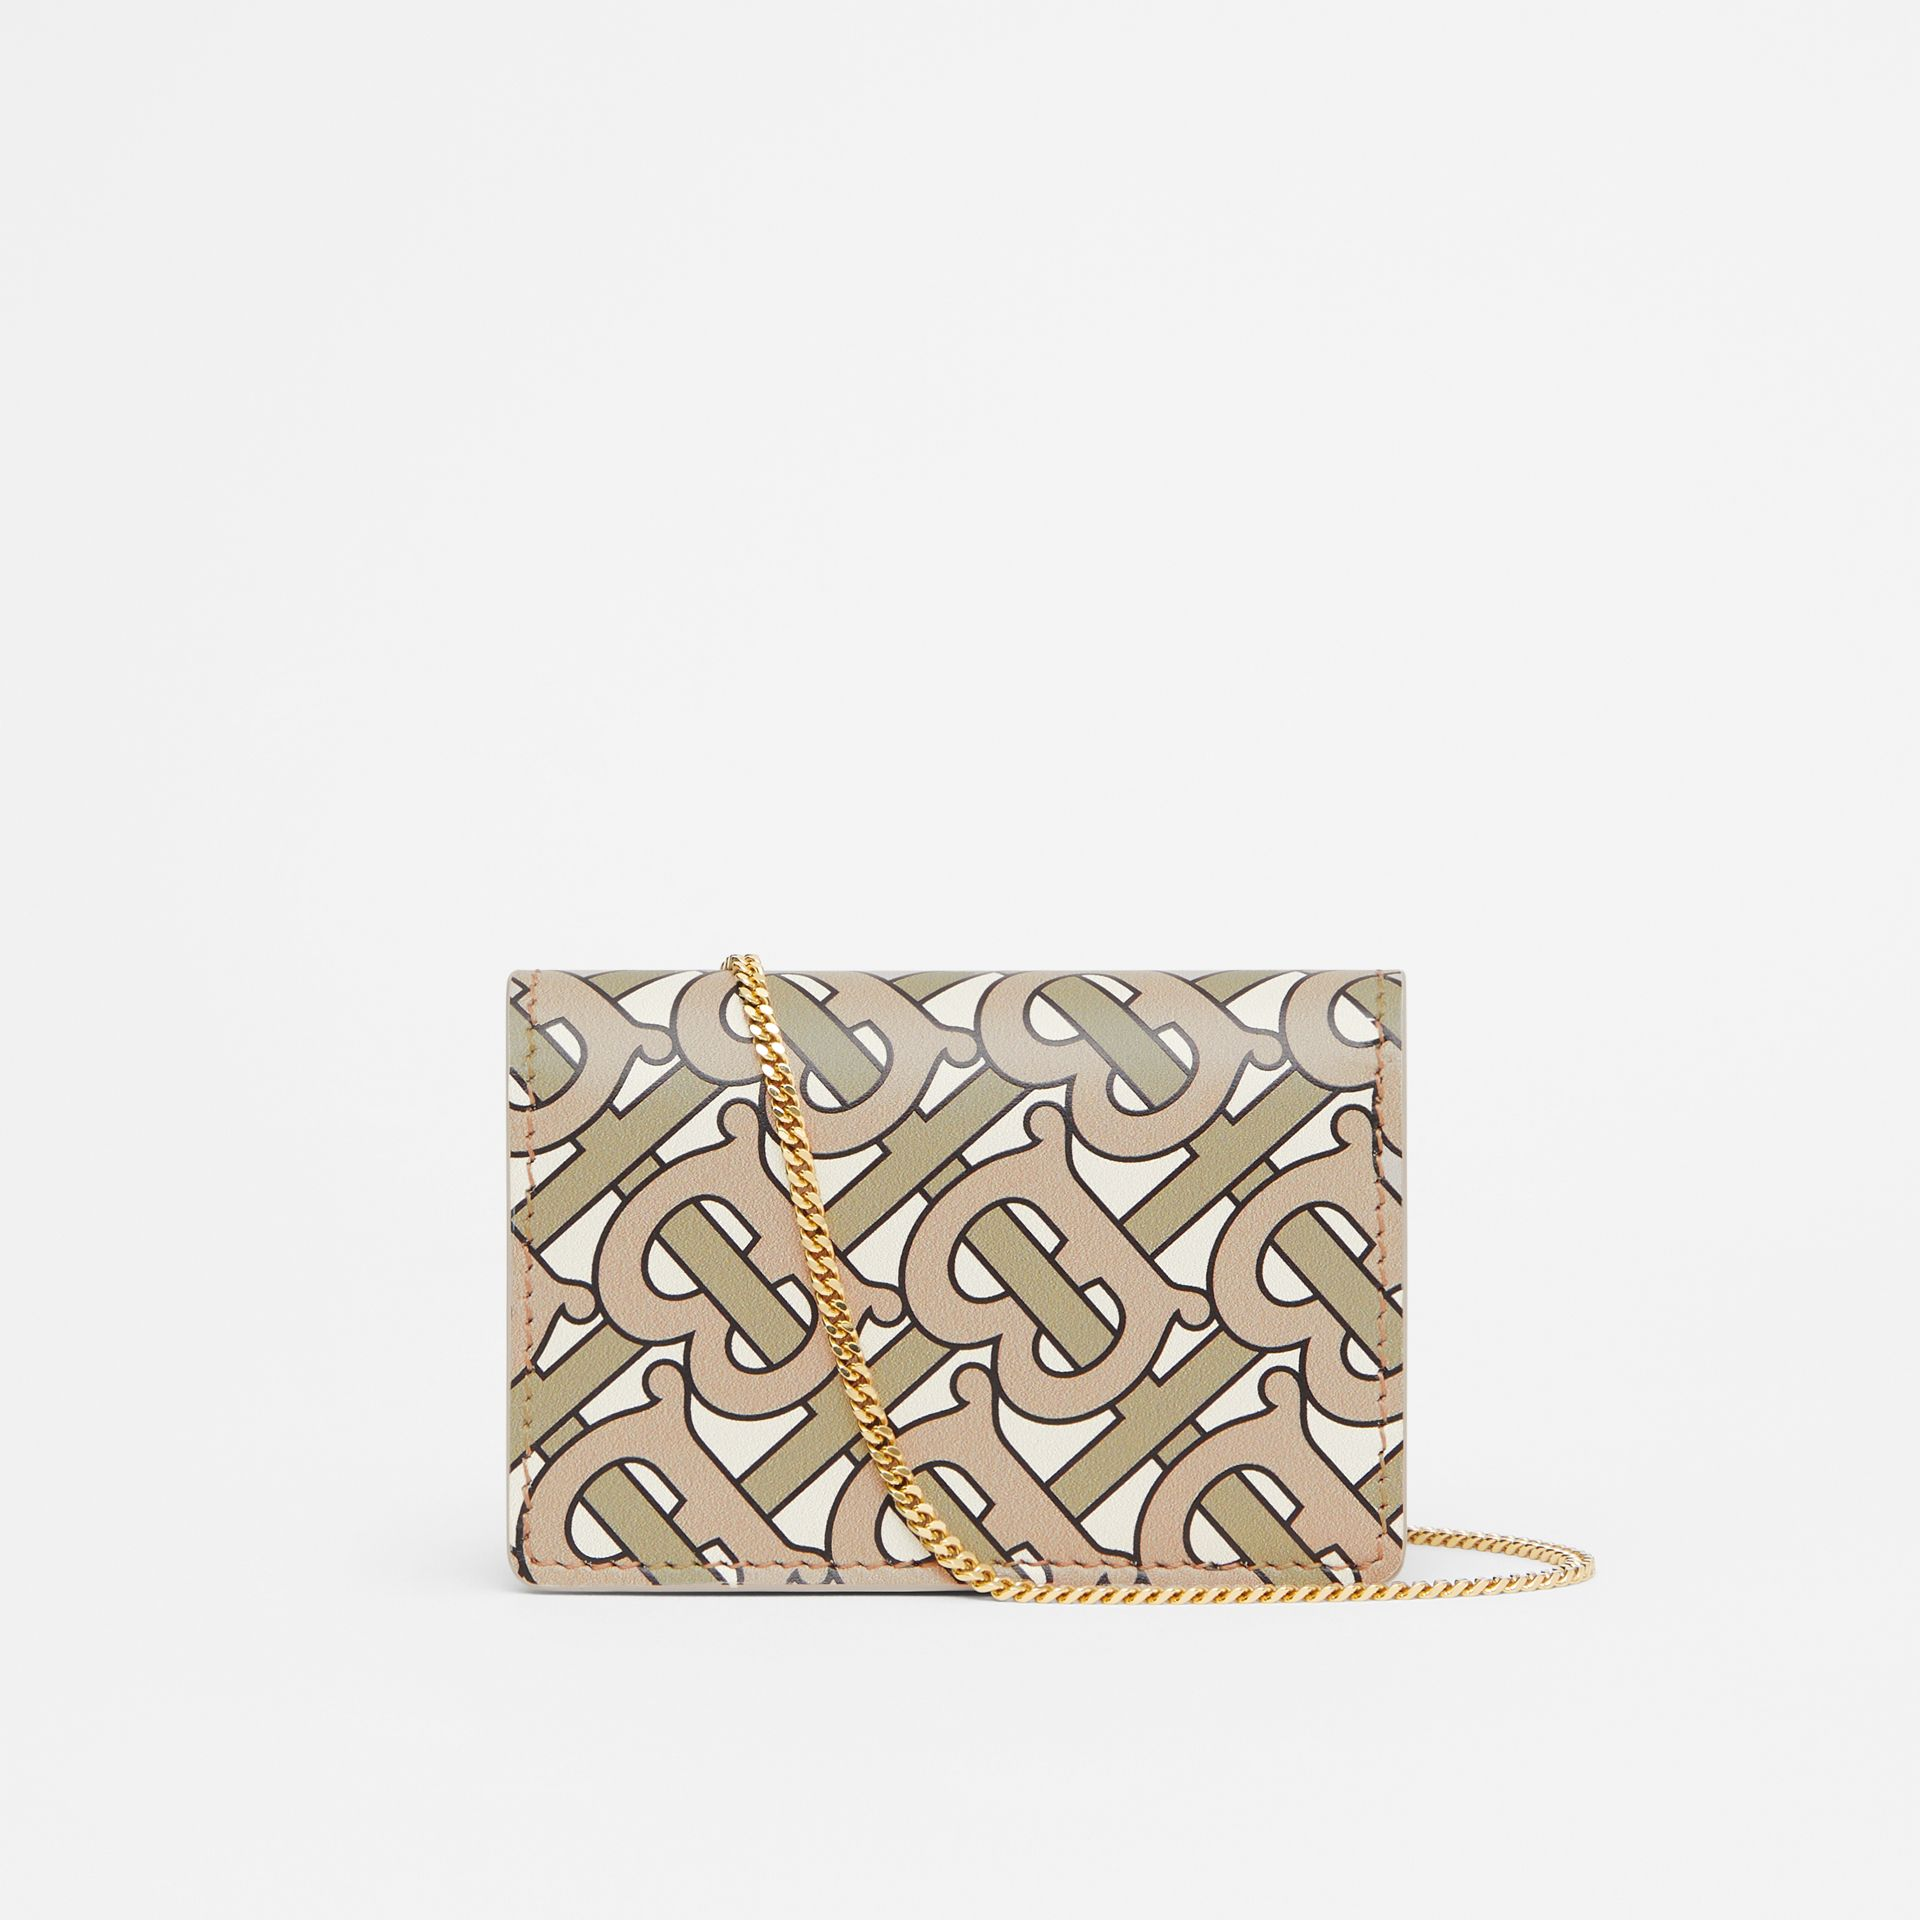 Monogram Print Card Case with Detachable Strap in Beige - Women | Burberry Singapore - gallery image 7